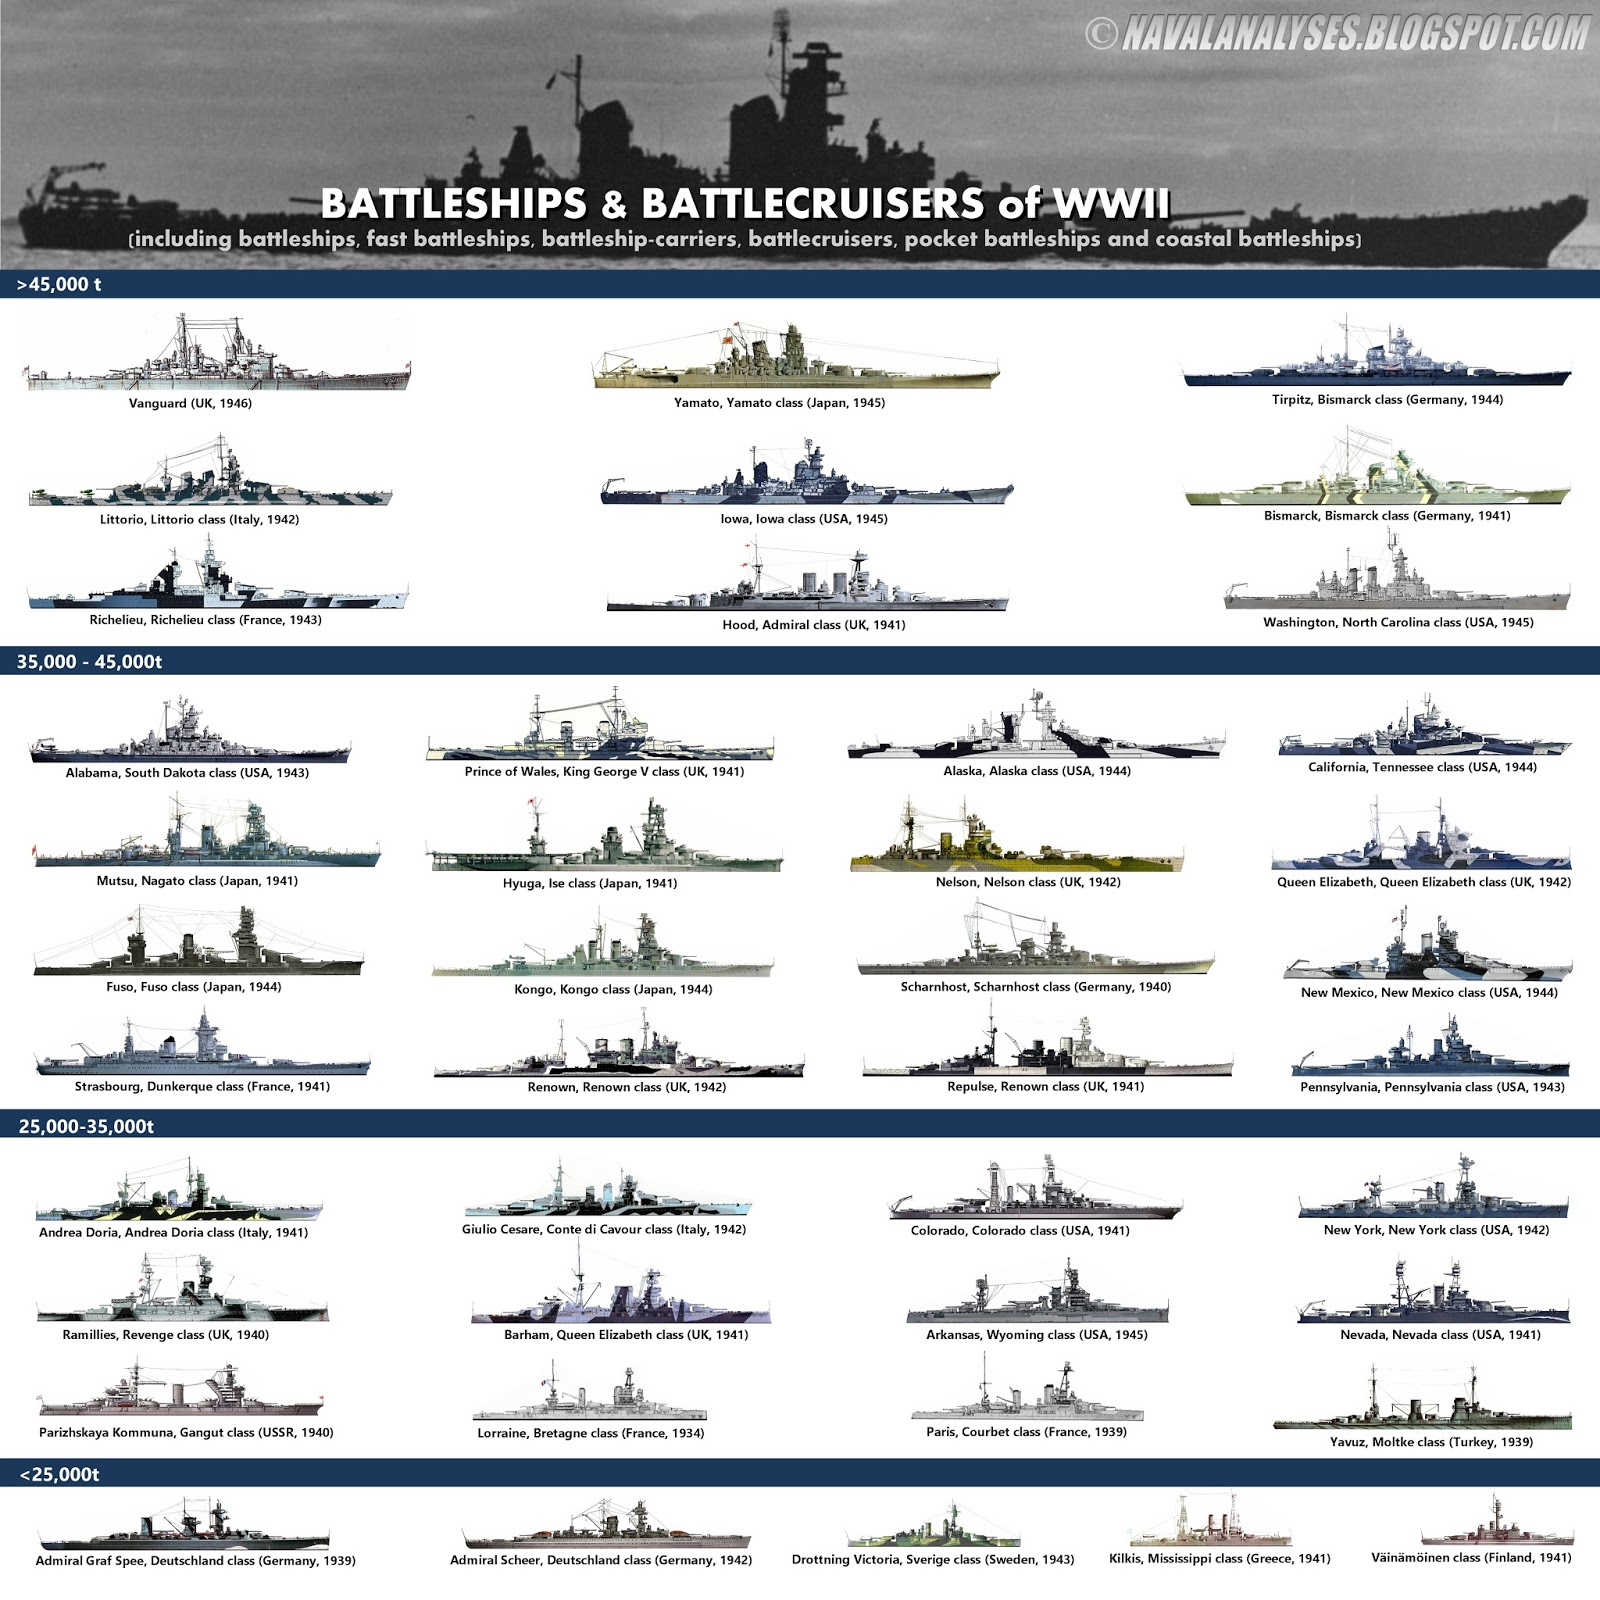 small resolution of battleships and battlecruisers of wwii version iii for a high resolution image click here another version where the coastal battleships yavuz kilkis